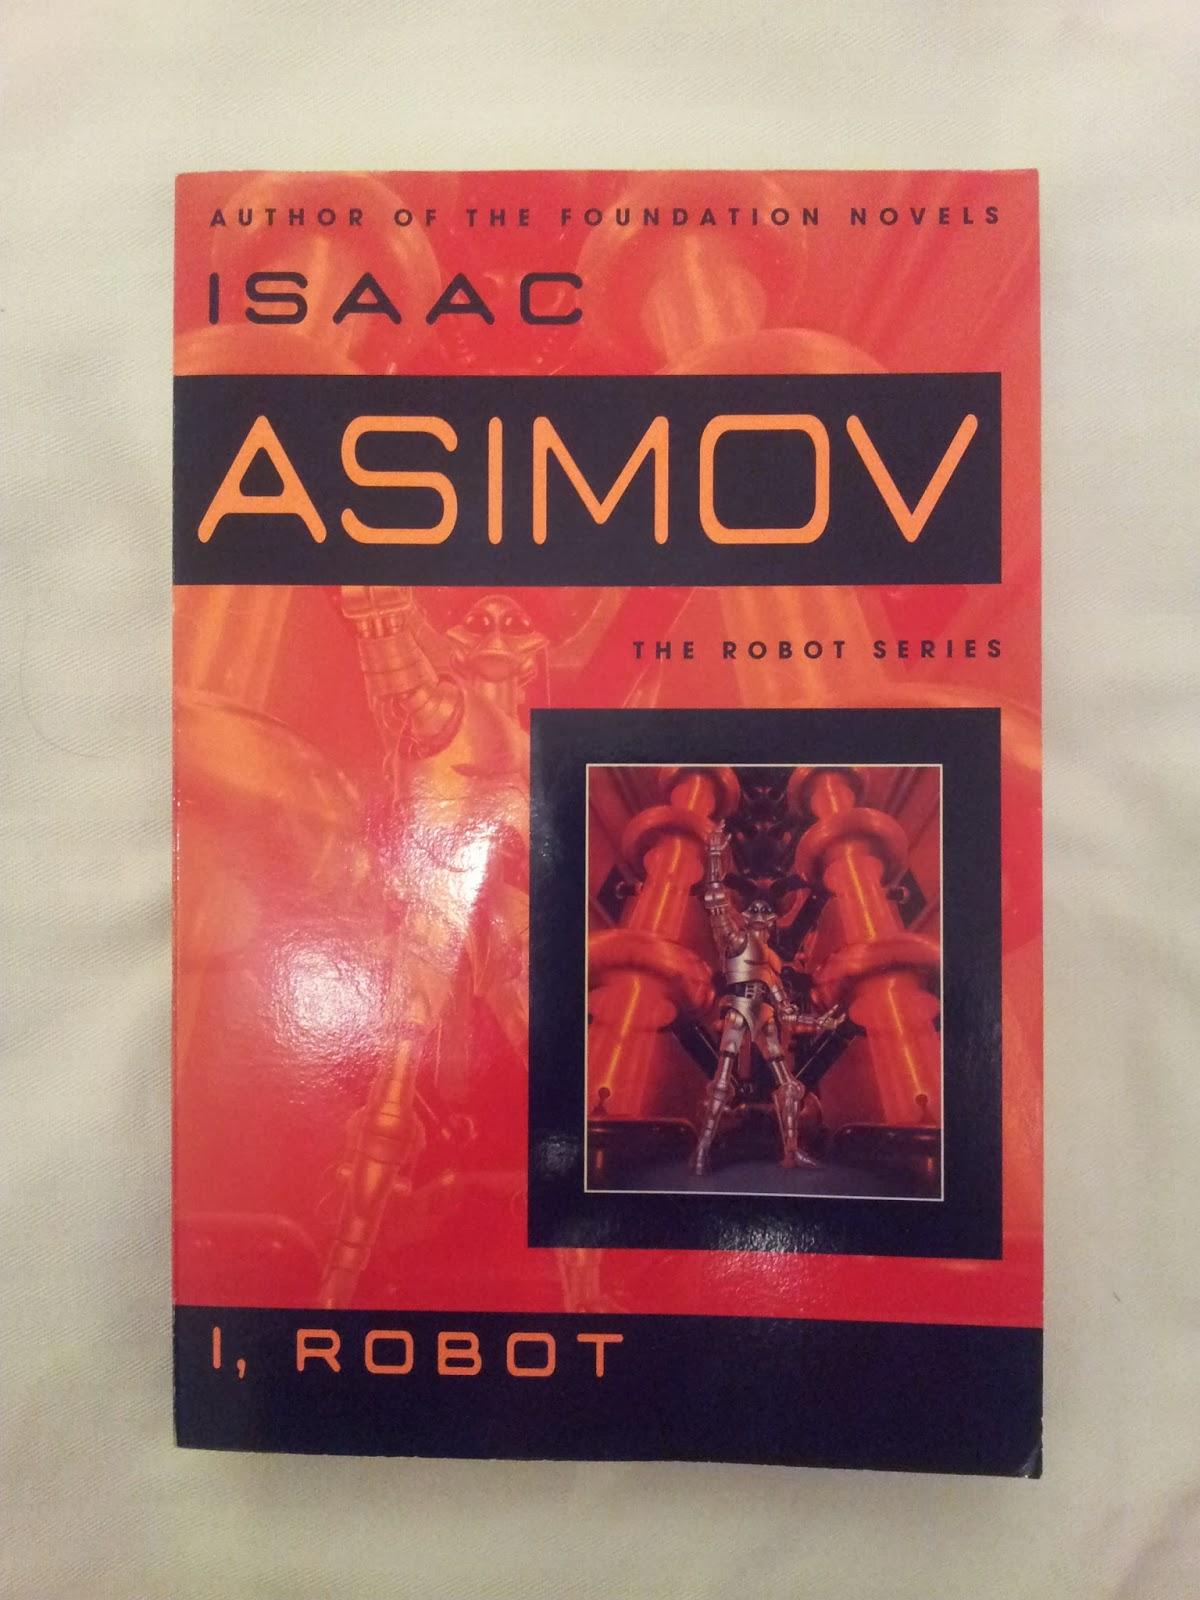 a review of the book nemesis by isaac asimov Nemesis by isaac asimov (1990, paperback) 1 product rating about this product brand new: lowest price  item 1 nemesis by isaac asimov - nemesis by isaac asimov $399 free shipping  bantam spectra book: nightfall by isaac asimov and robert a.